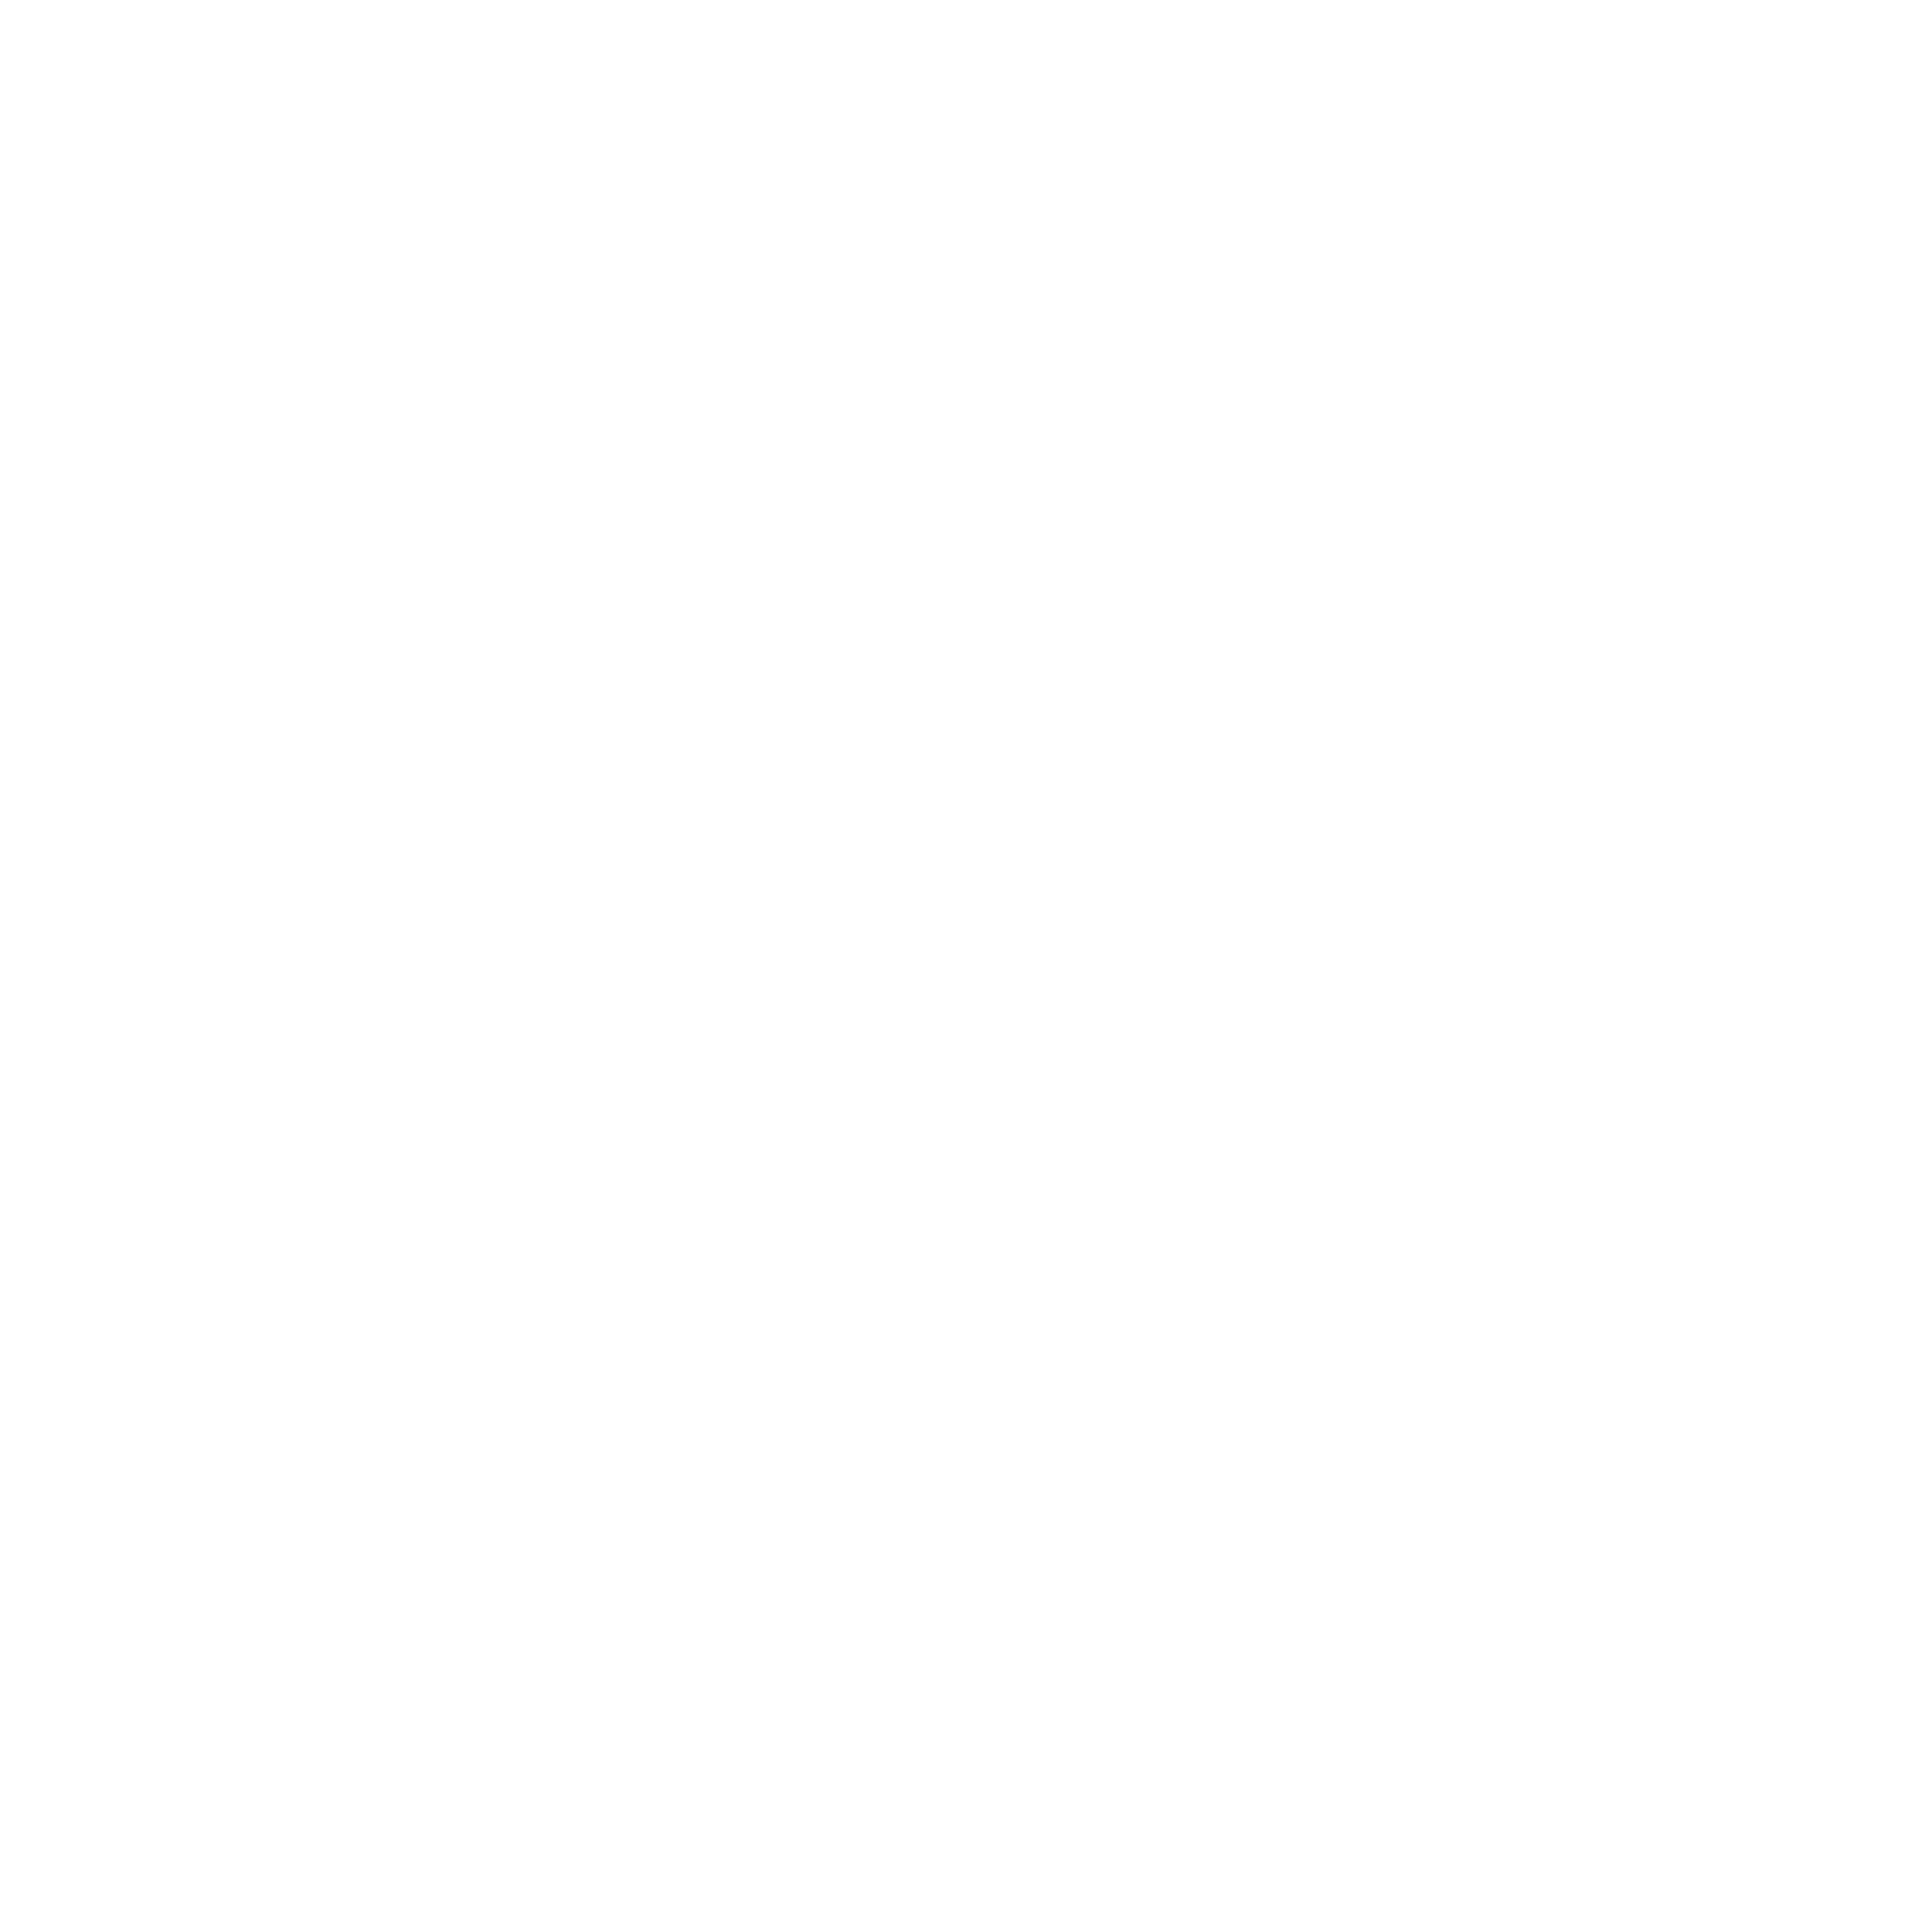 white question mark png #90295072